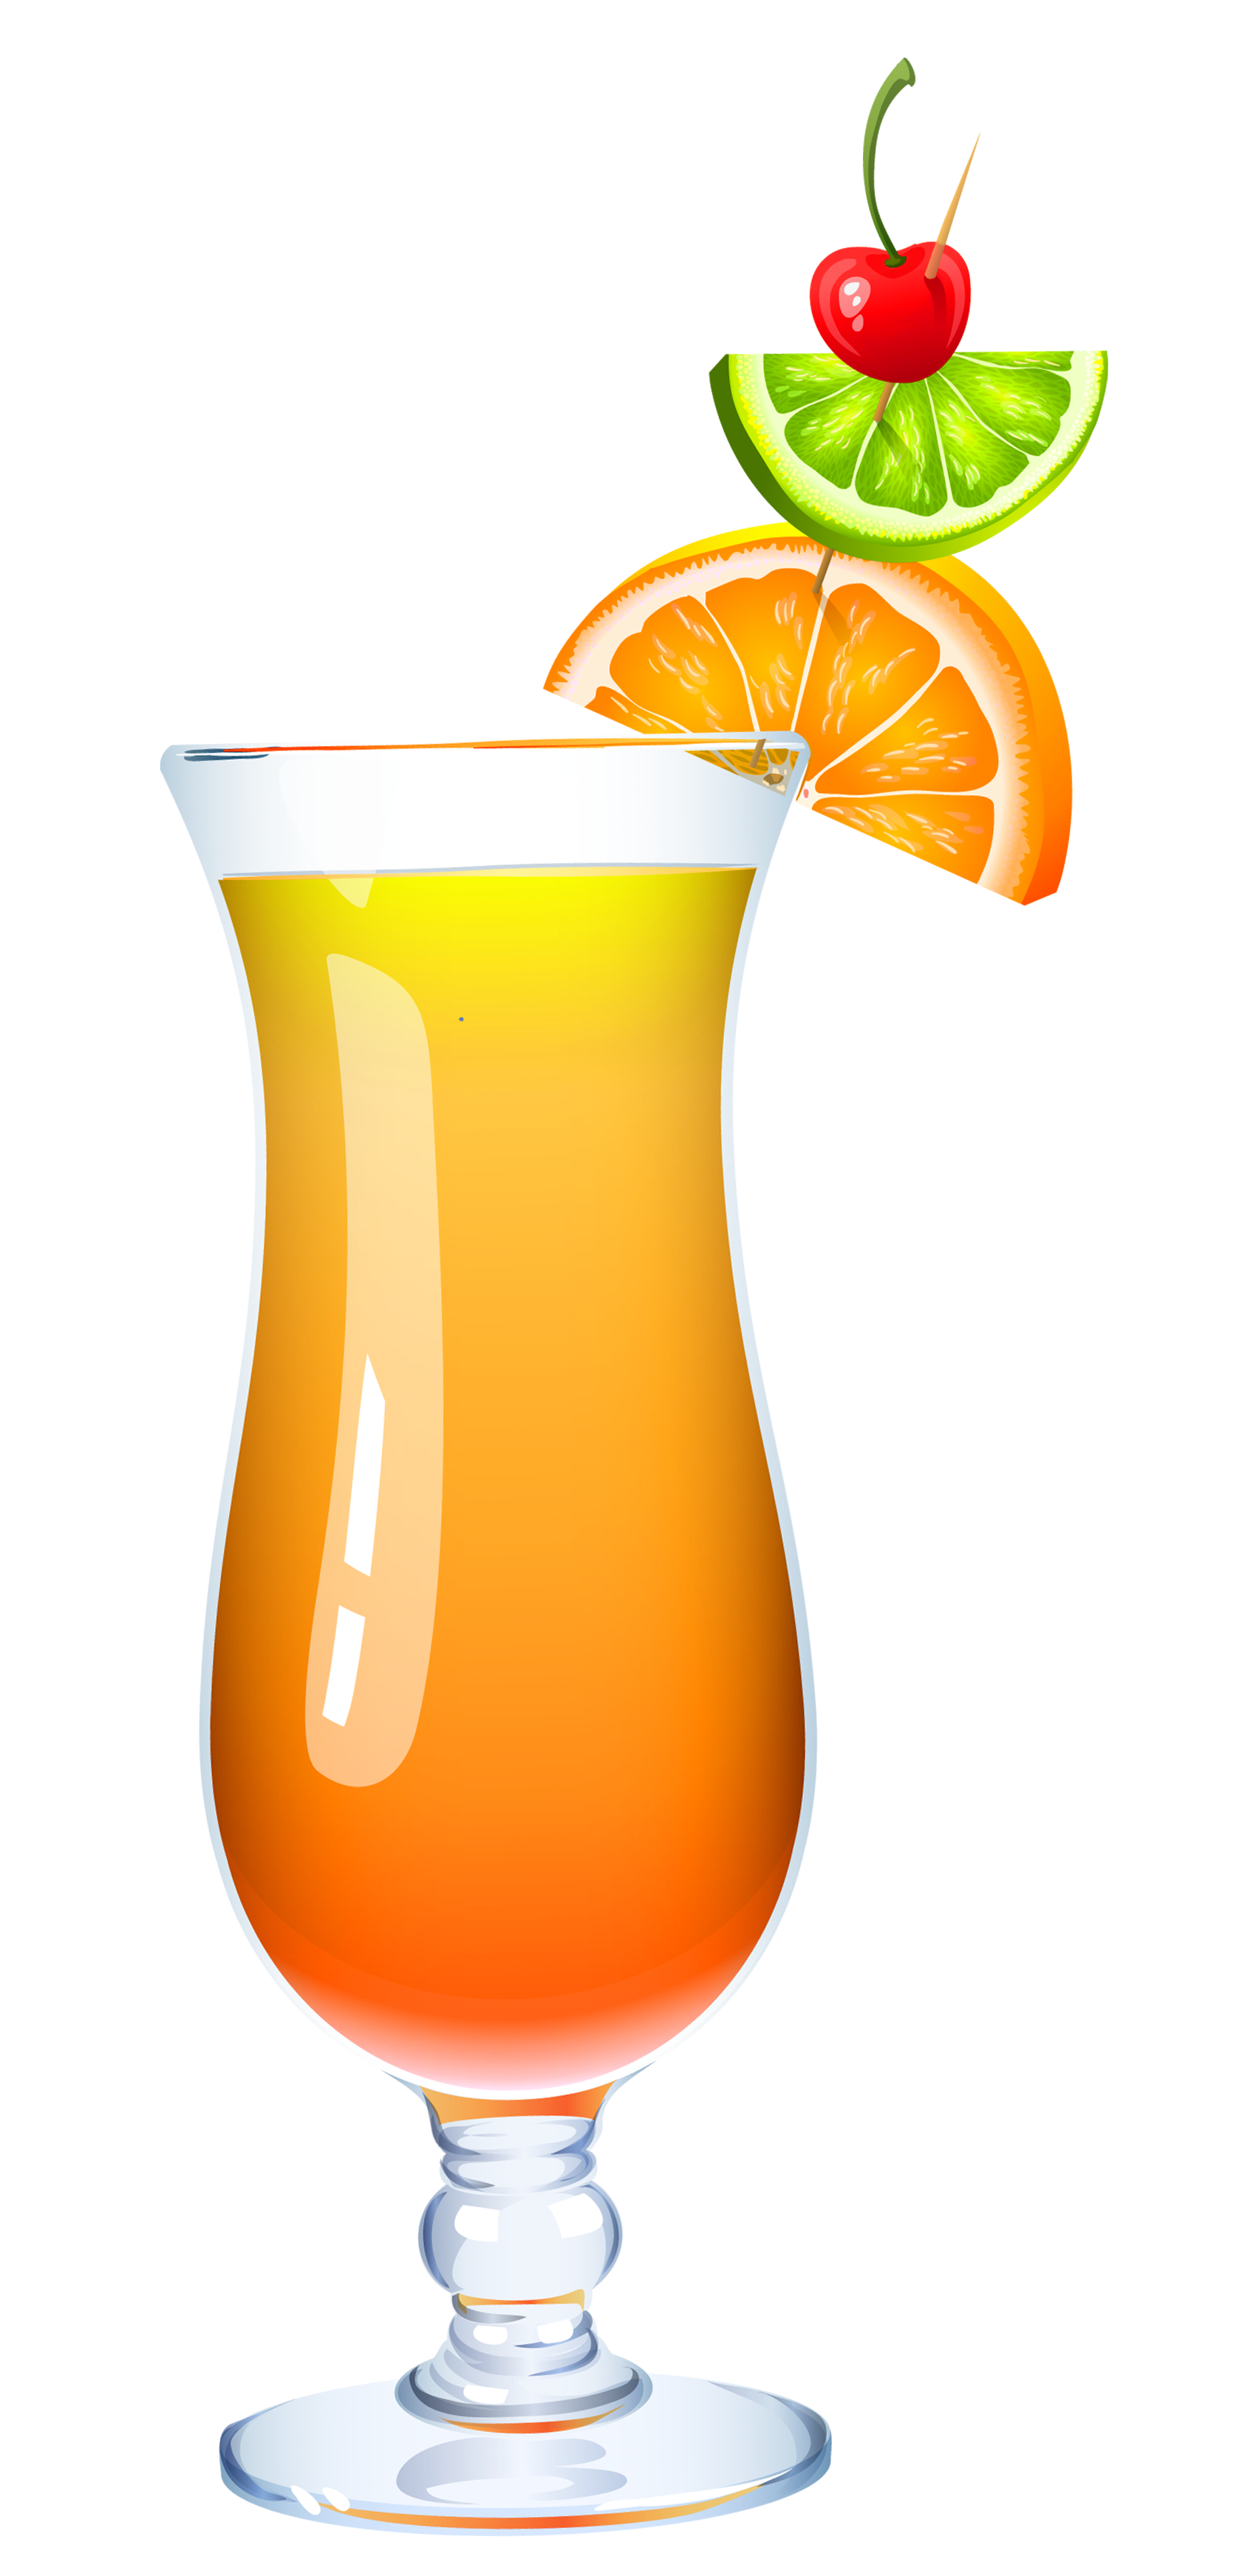 Evaporation clipart afternoon activity. Exotic cocktail png picture